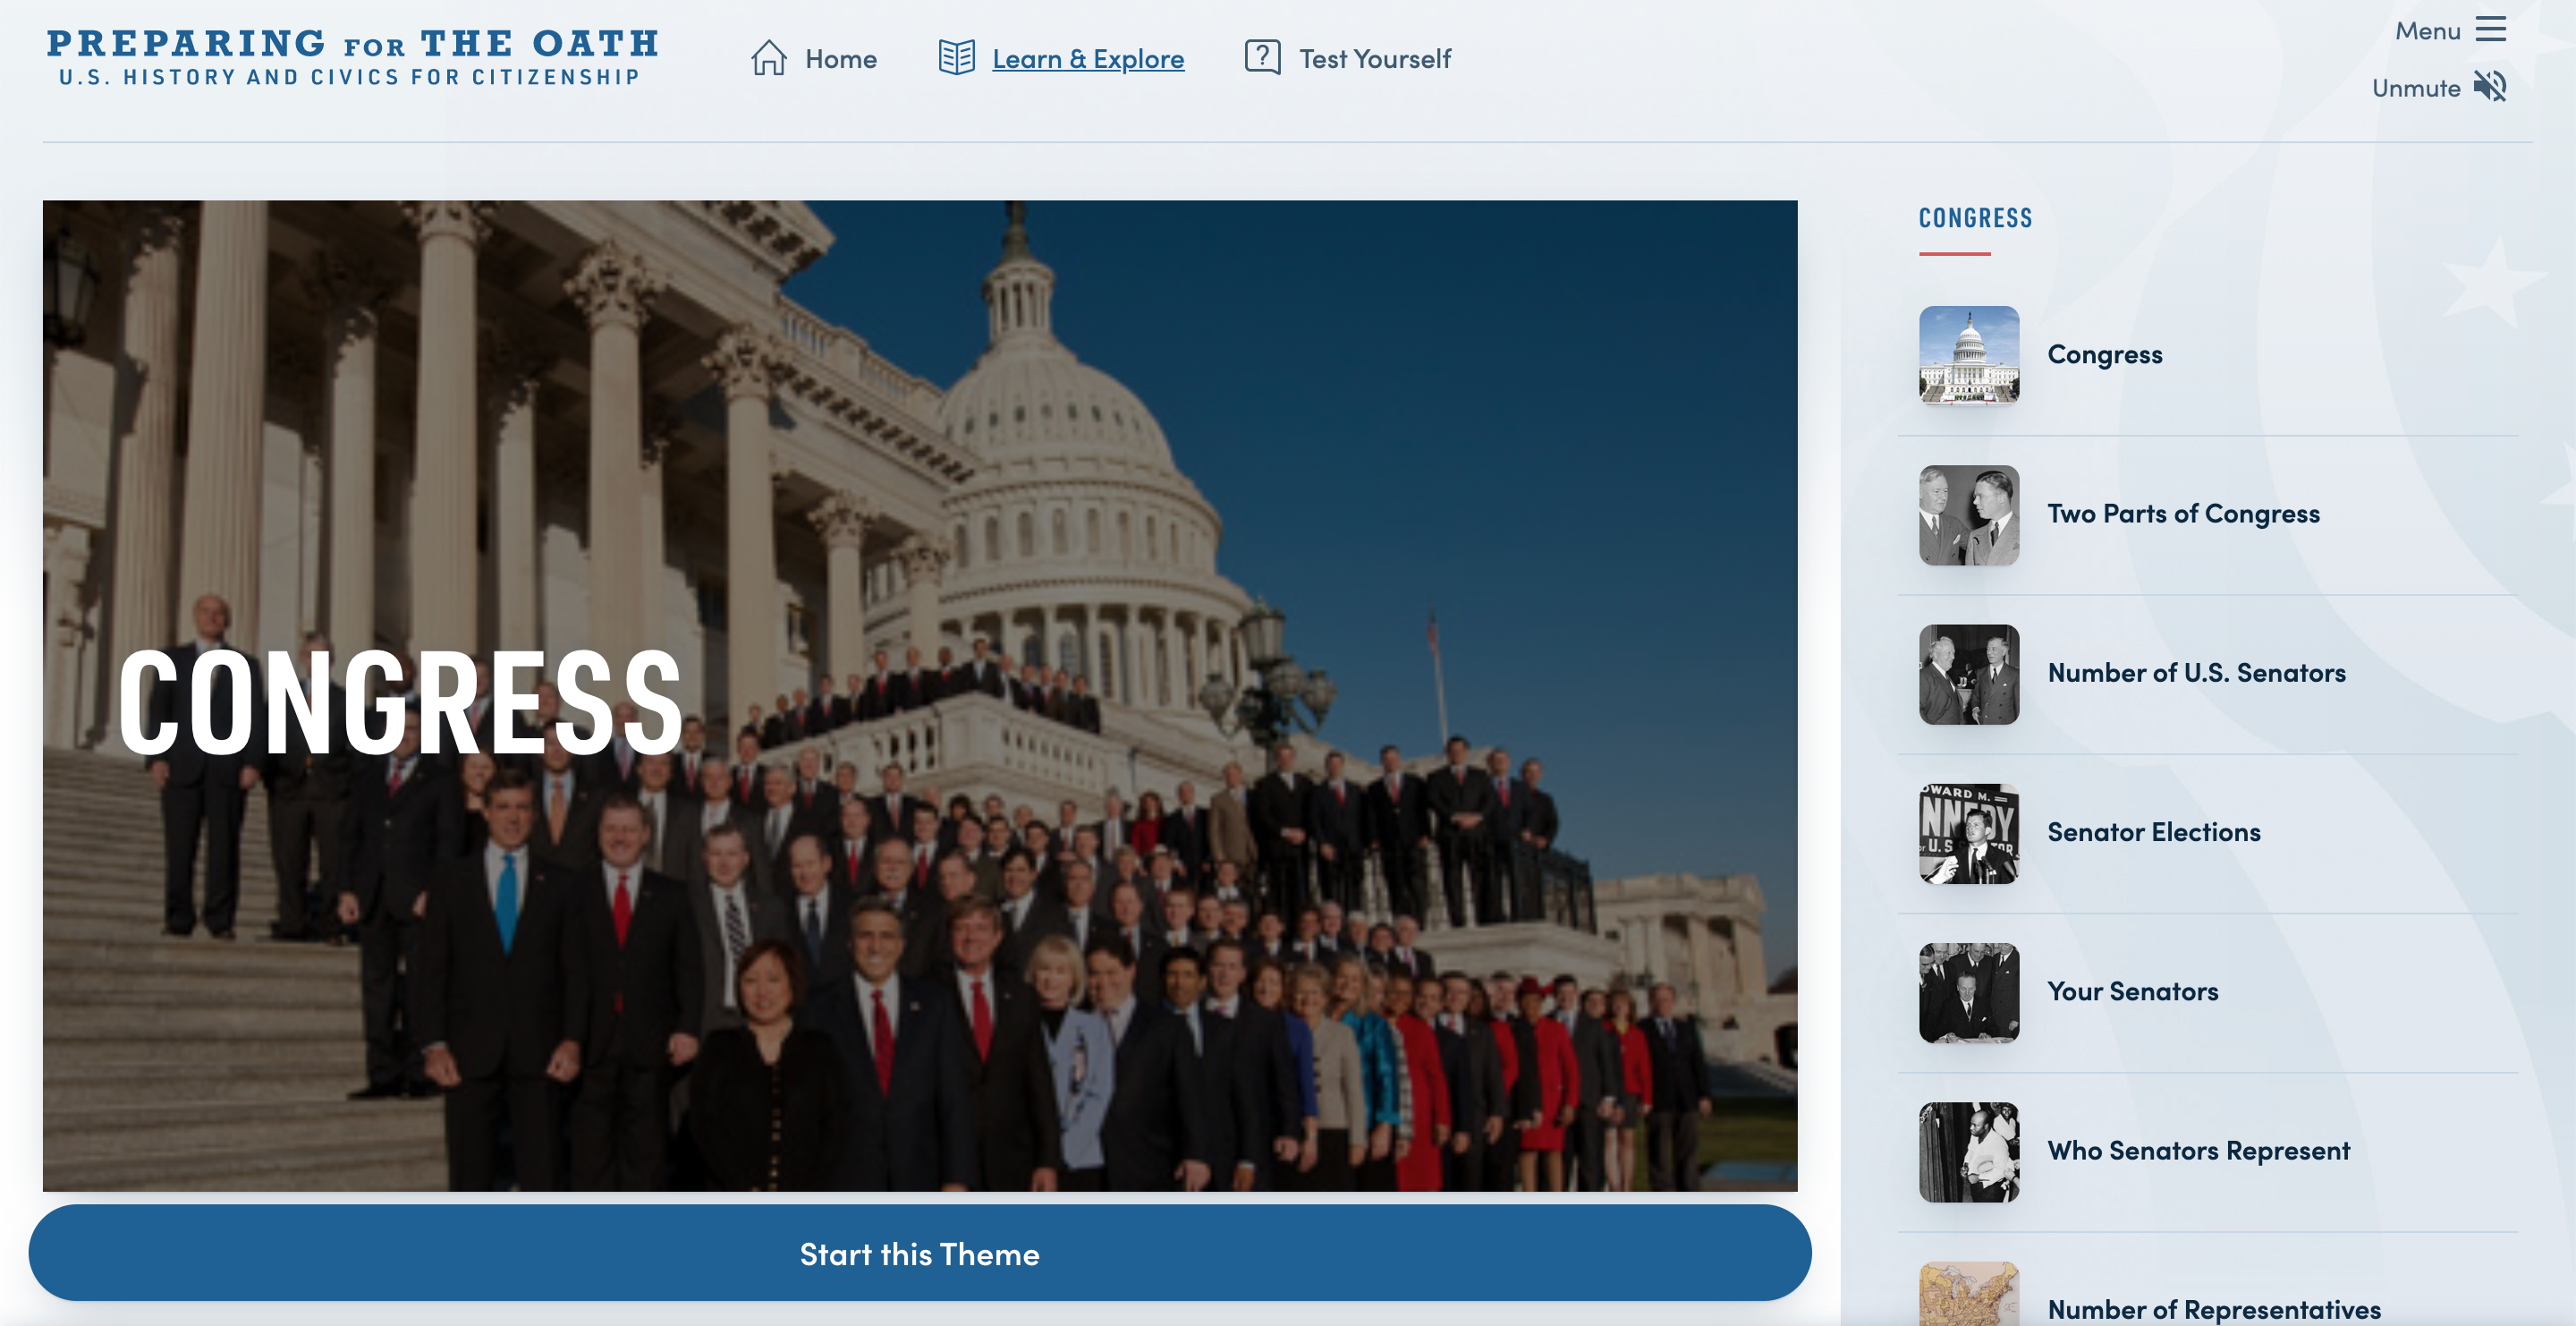 Thumbnail image of Preparing for the Oath: Congress resource